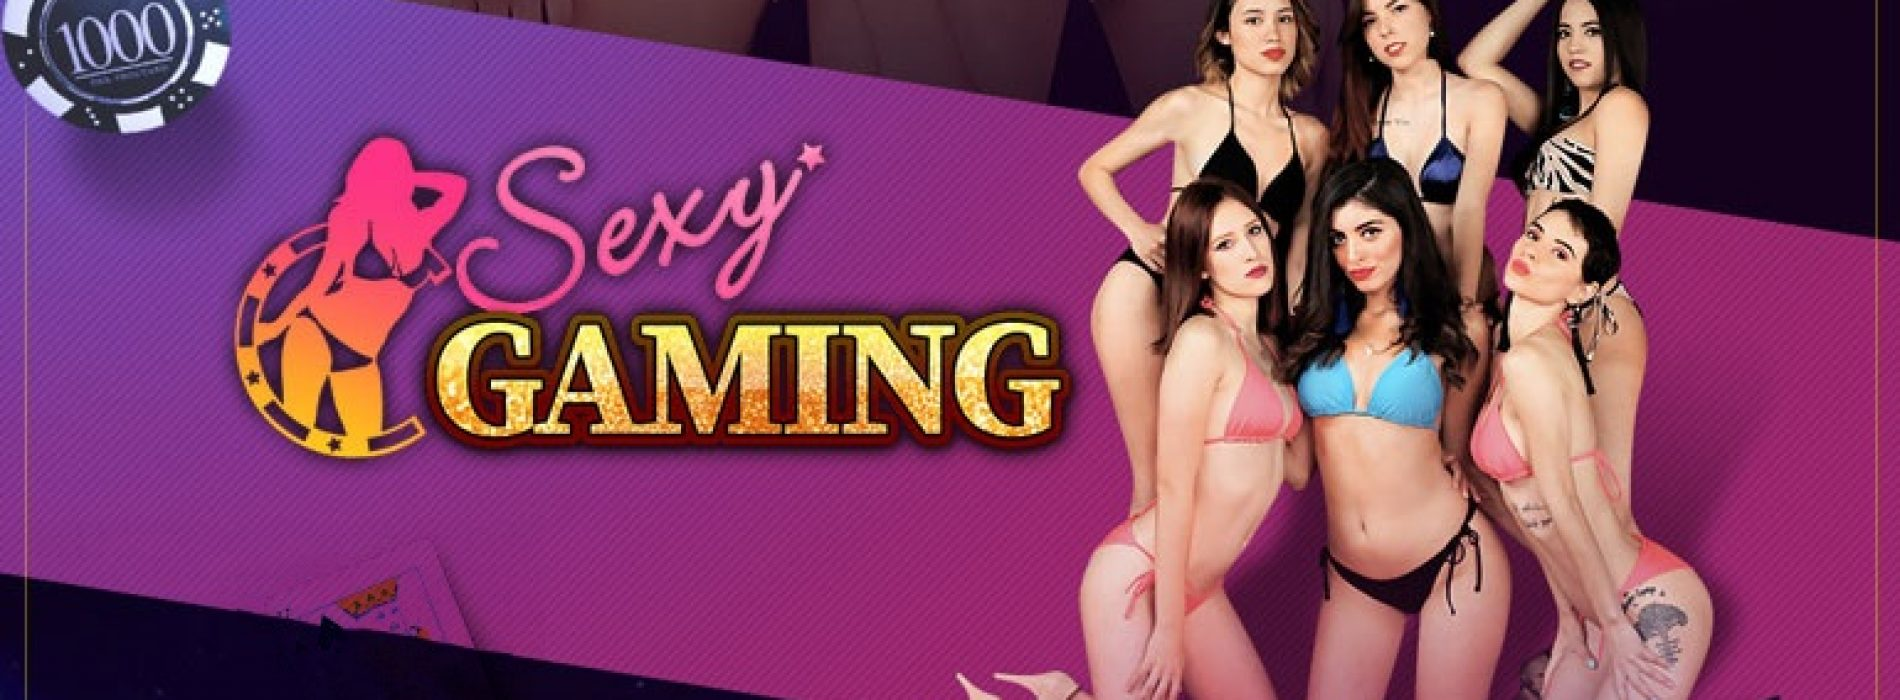 SexyGameGod – Play Real Gambling Games While In Touch With Hot Chicks!